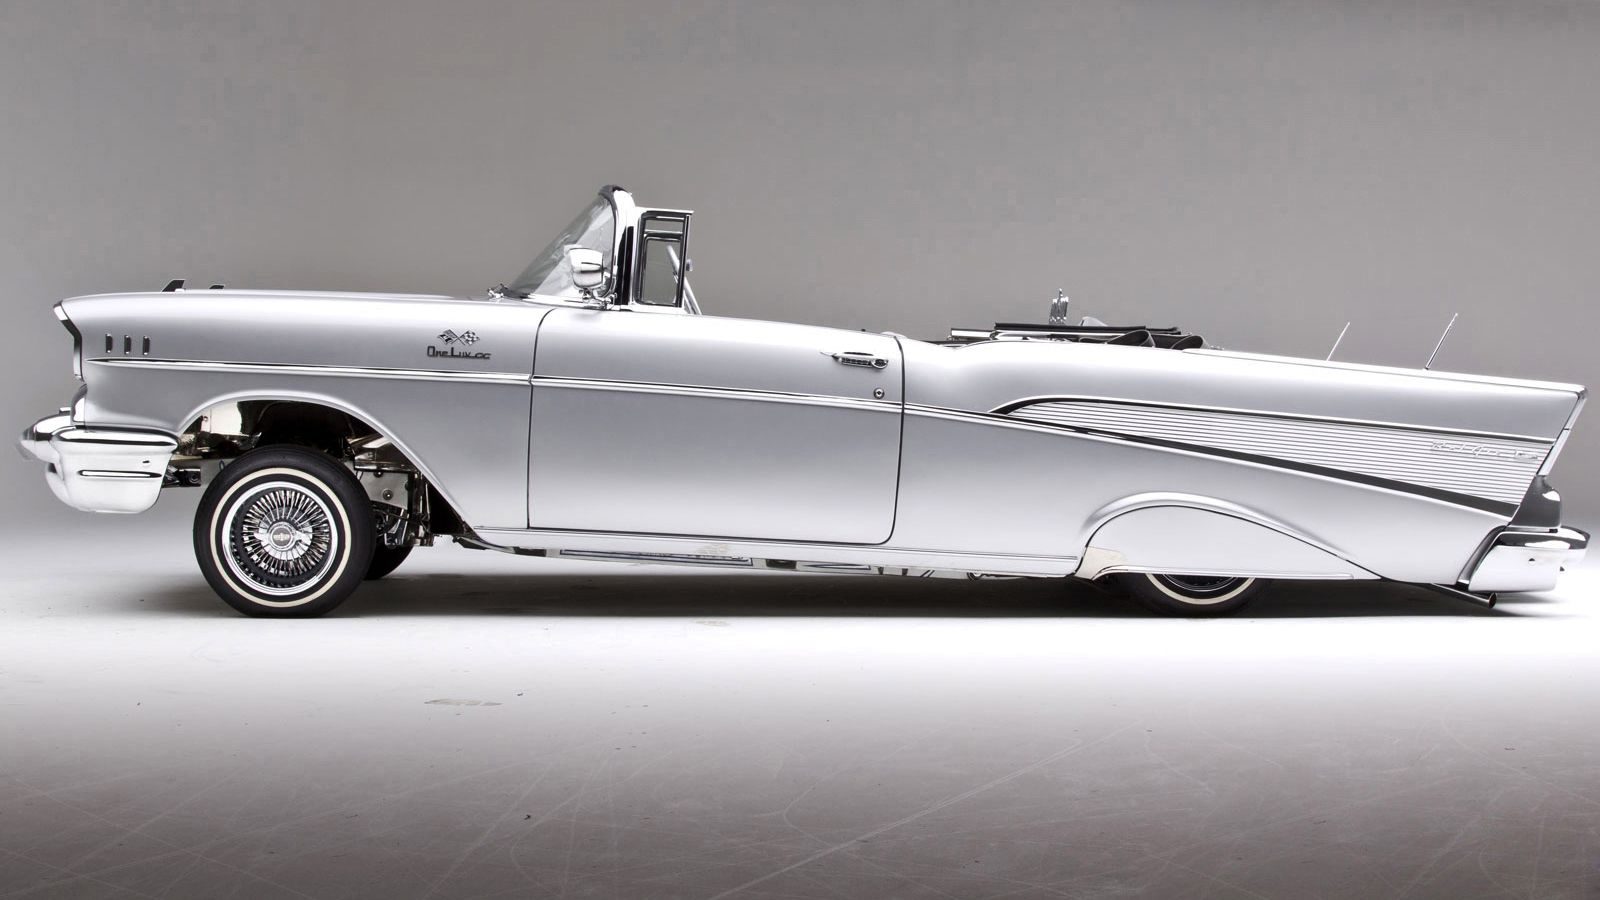 Not A Big Lowrider Lover But Thats Cool Ridez Pinterest Cars 1957 Chevy Impala